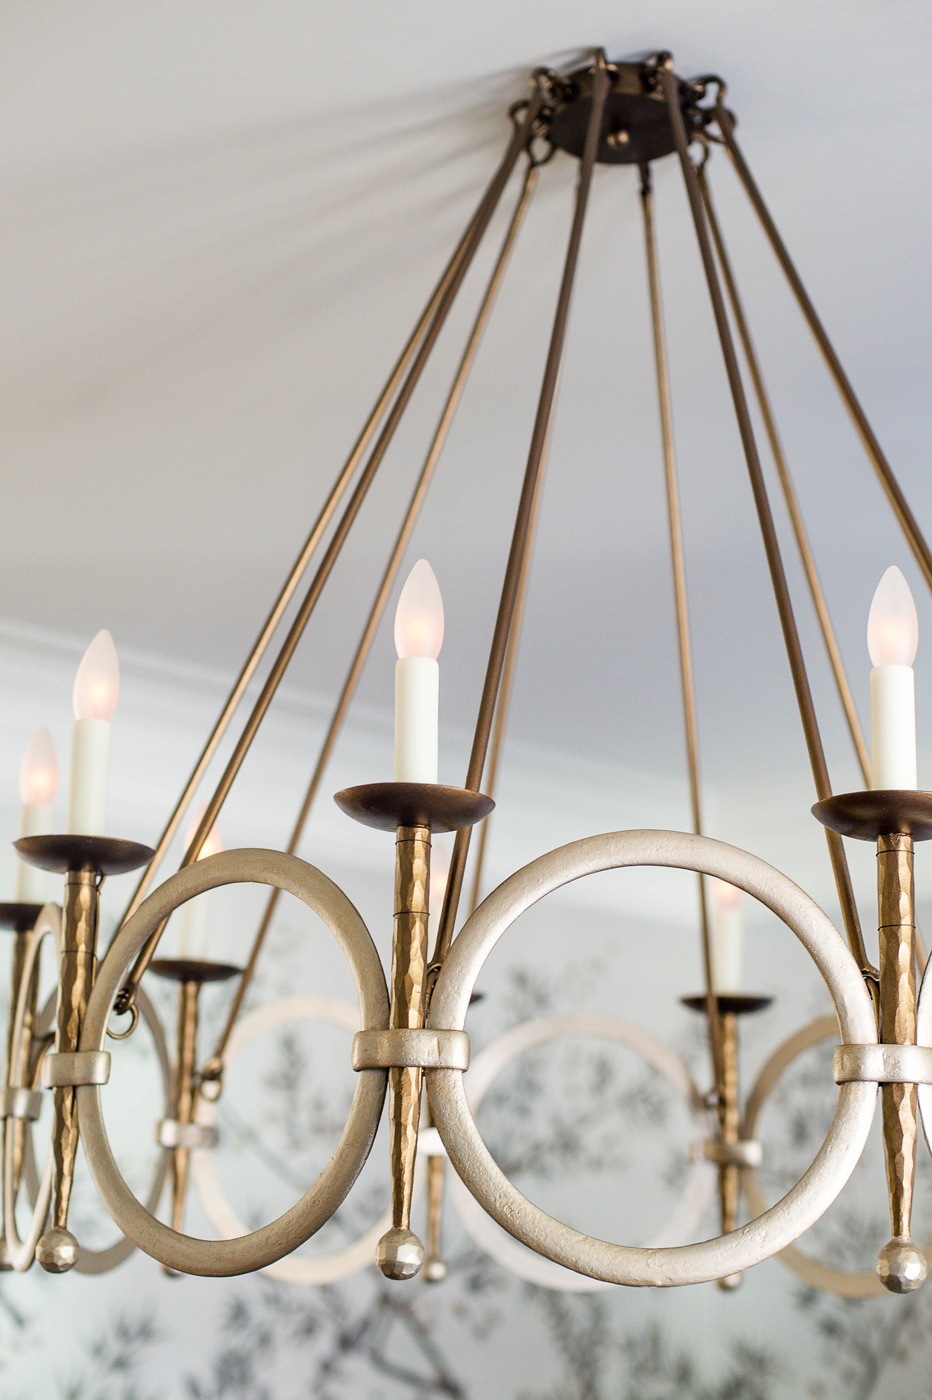 Gilt metal chandelier detail in gold and silver tones in luxurious Brentwood residence dining room | Savage Interior Design